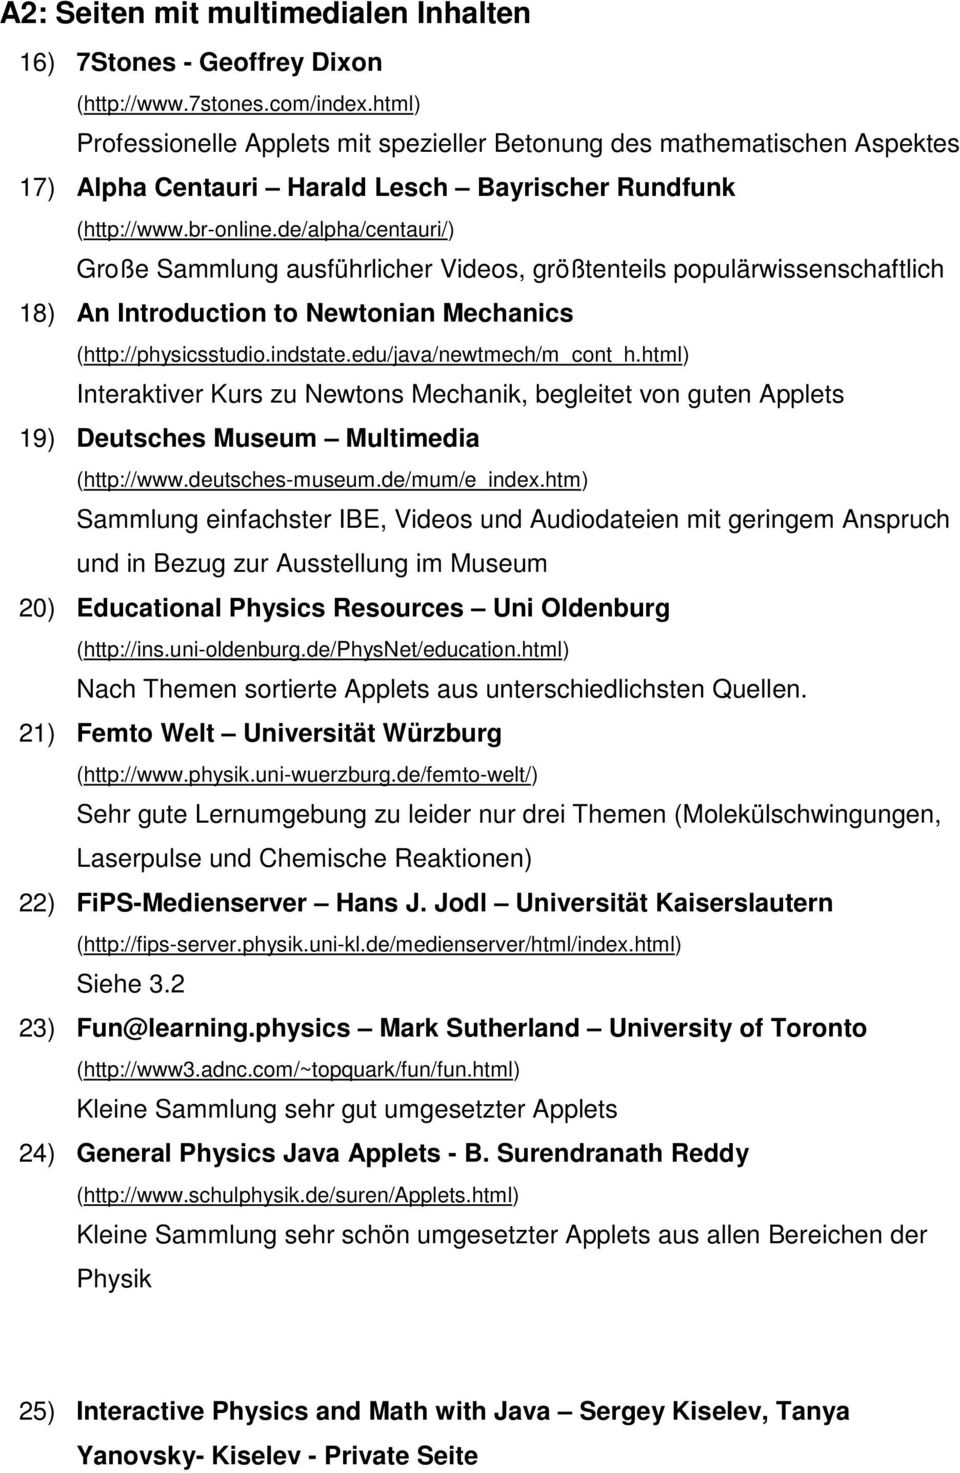 de/alpha/centauri/) Große Sammlung ausführlicher Videos, größtenteils populärwissenschaftlich 18) An Introduction to Newtonian Mechanics (http://physicsstudio.indstate.edu/java/newtmech/m_cont_h.